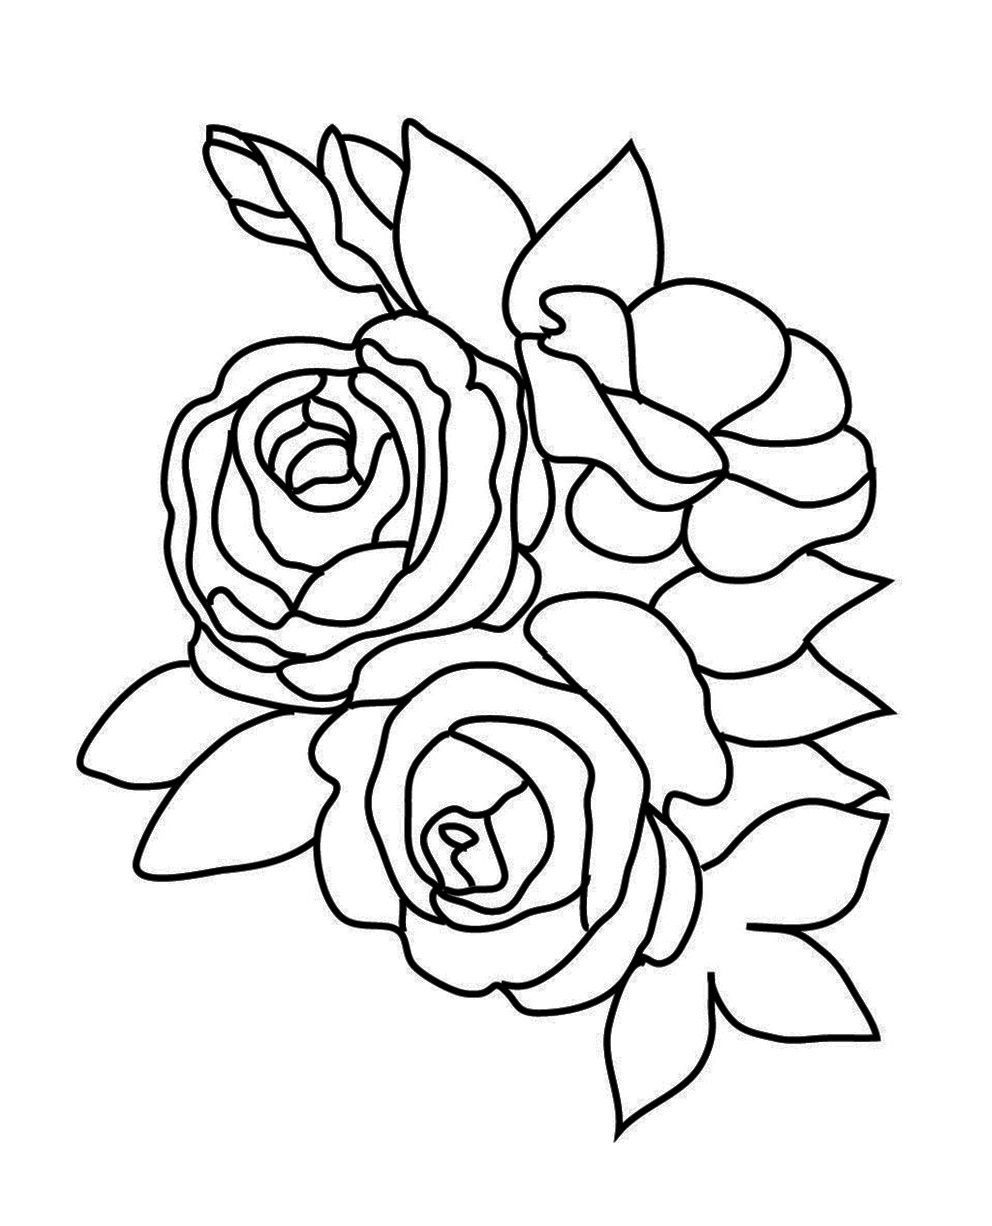 992x1226 Stunning Value Buttercup Flower Coloring Pages For Image Of Style